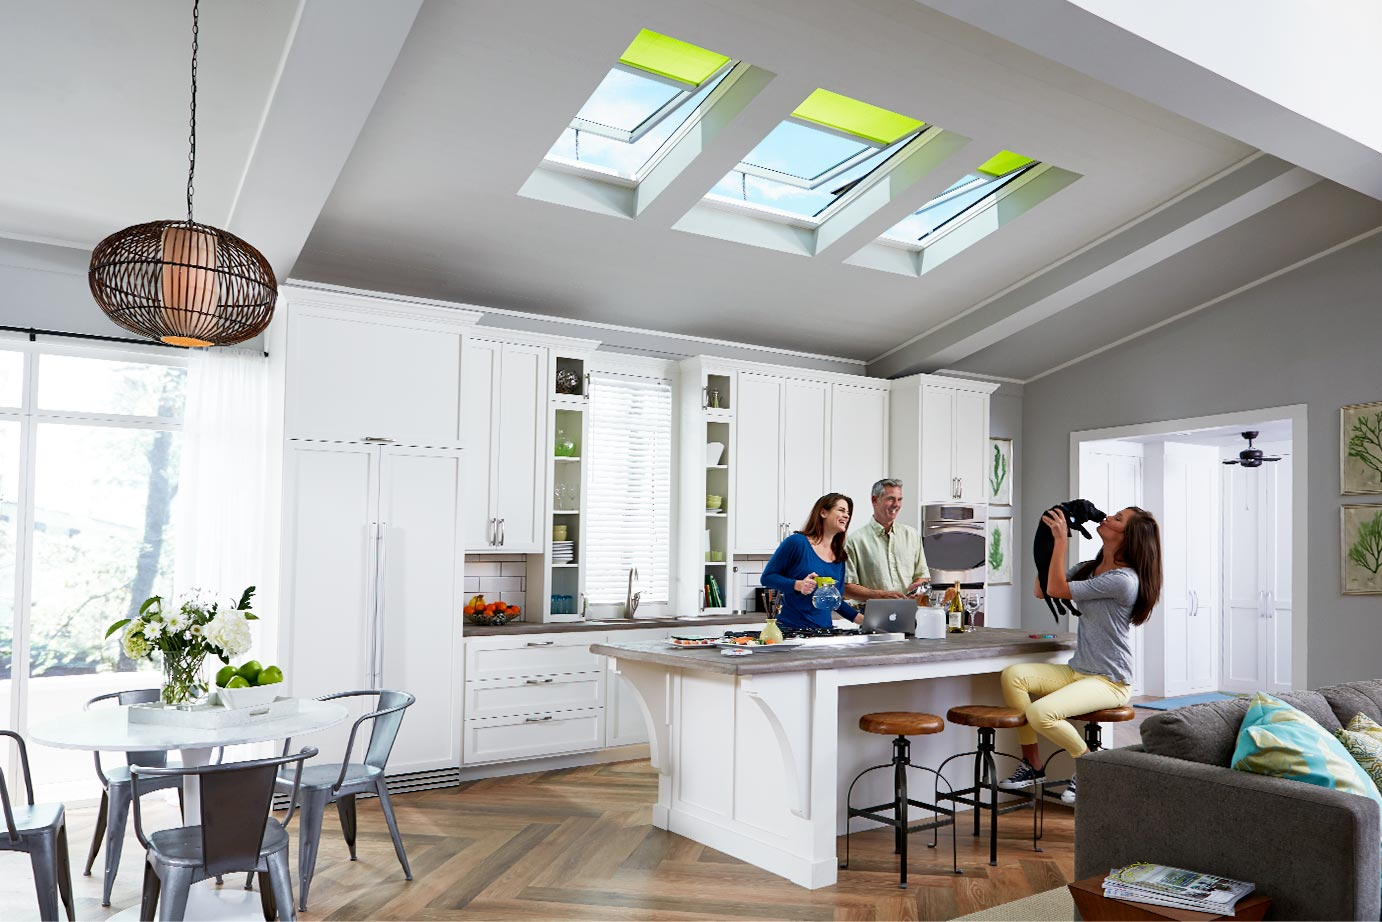 kitchen green blinds?h=922&la=en&w=1382&cc=grid_12&key=145917965341898&sw=960 velux frequently asked questions velux klf 100 wiring diagram at gsmx.co